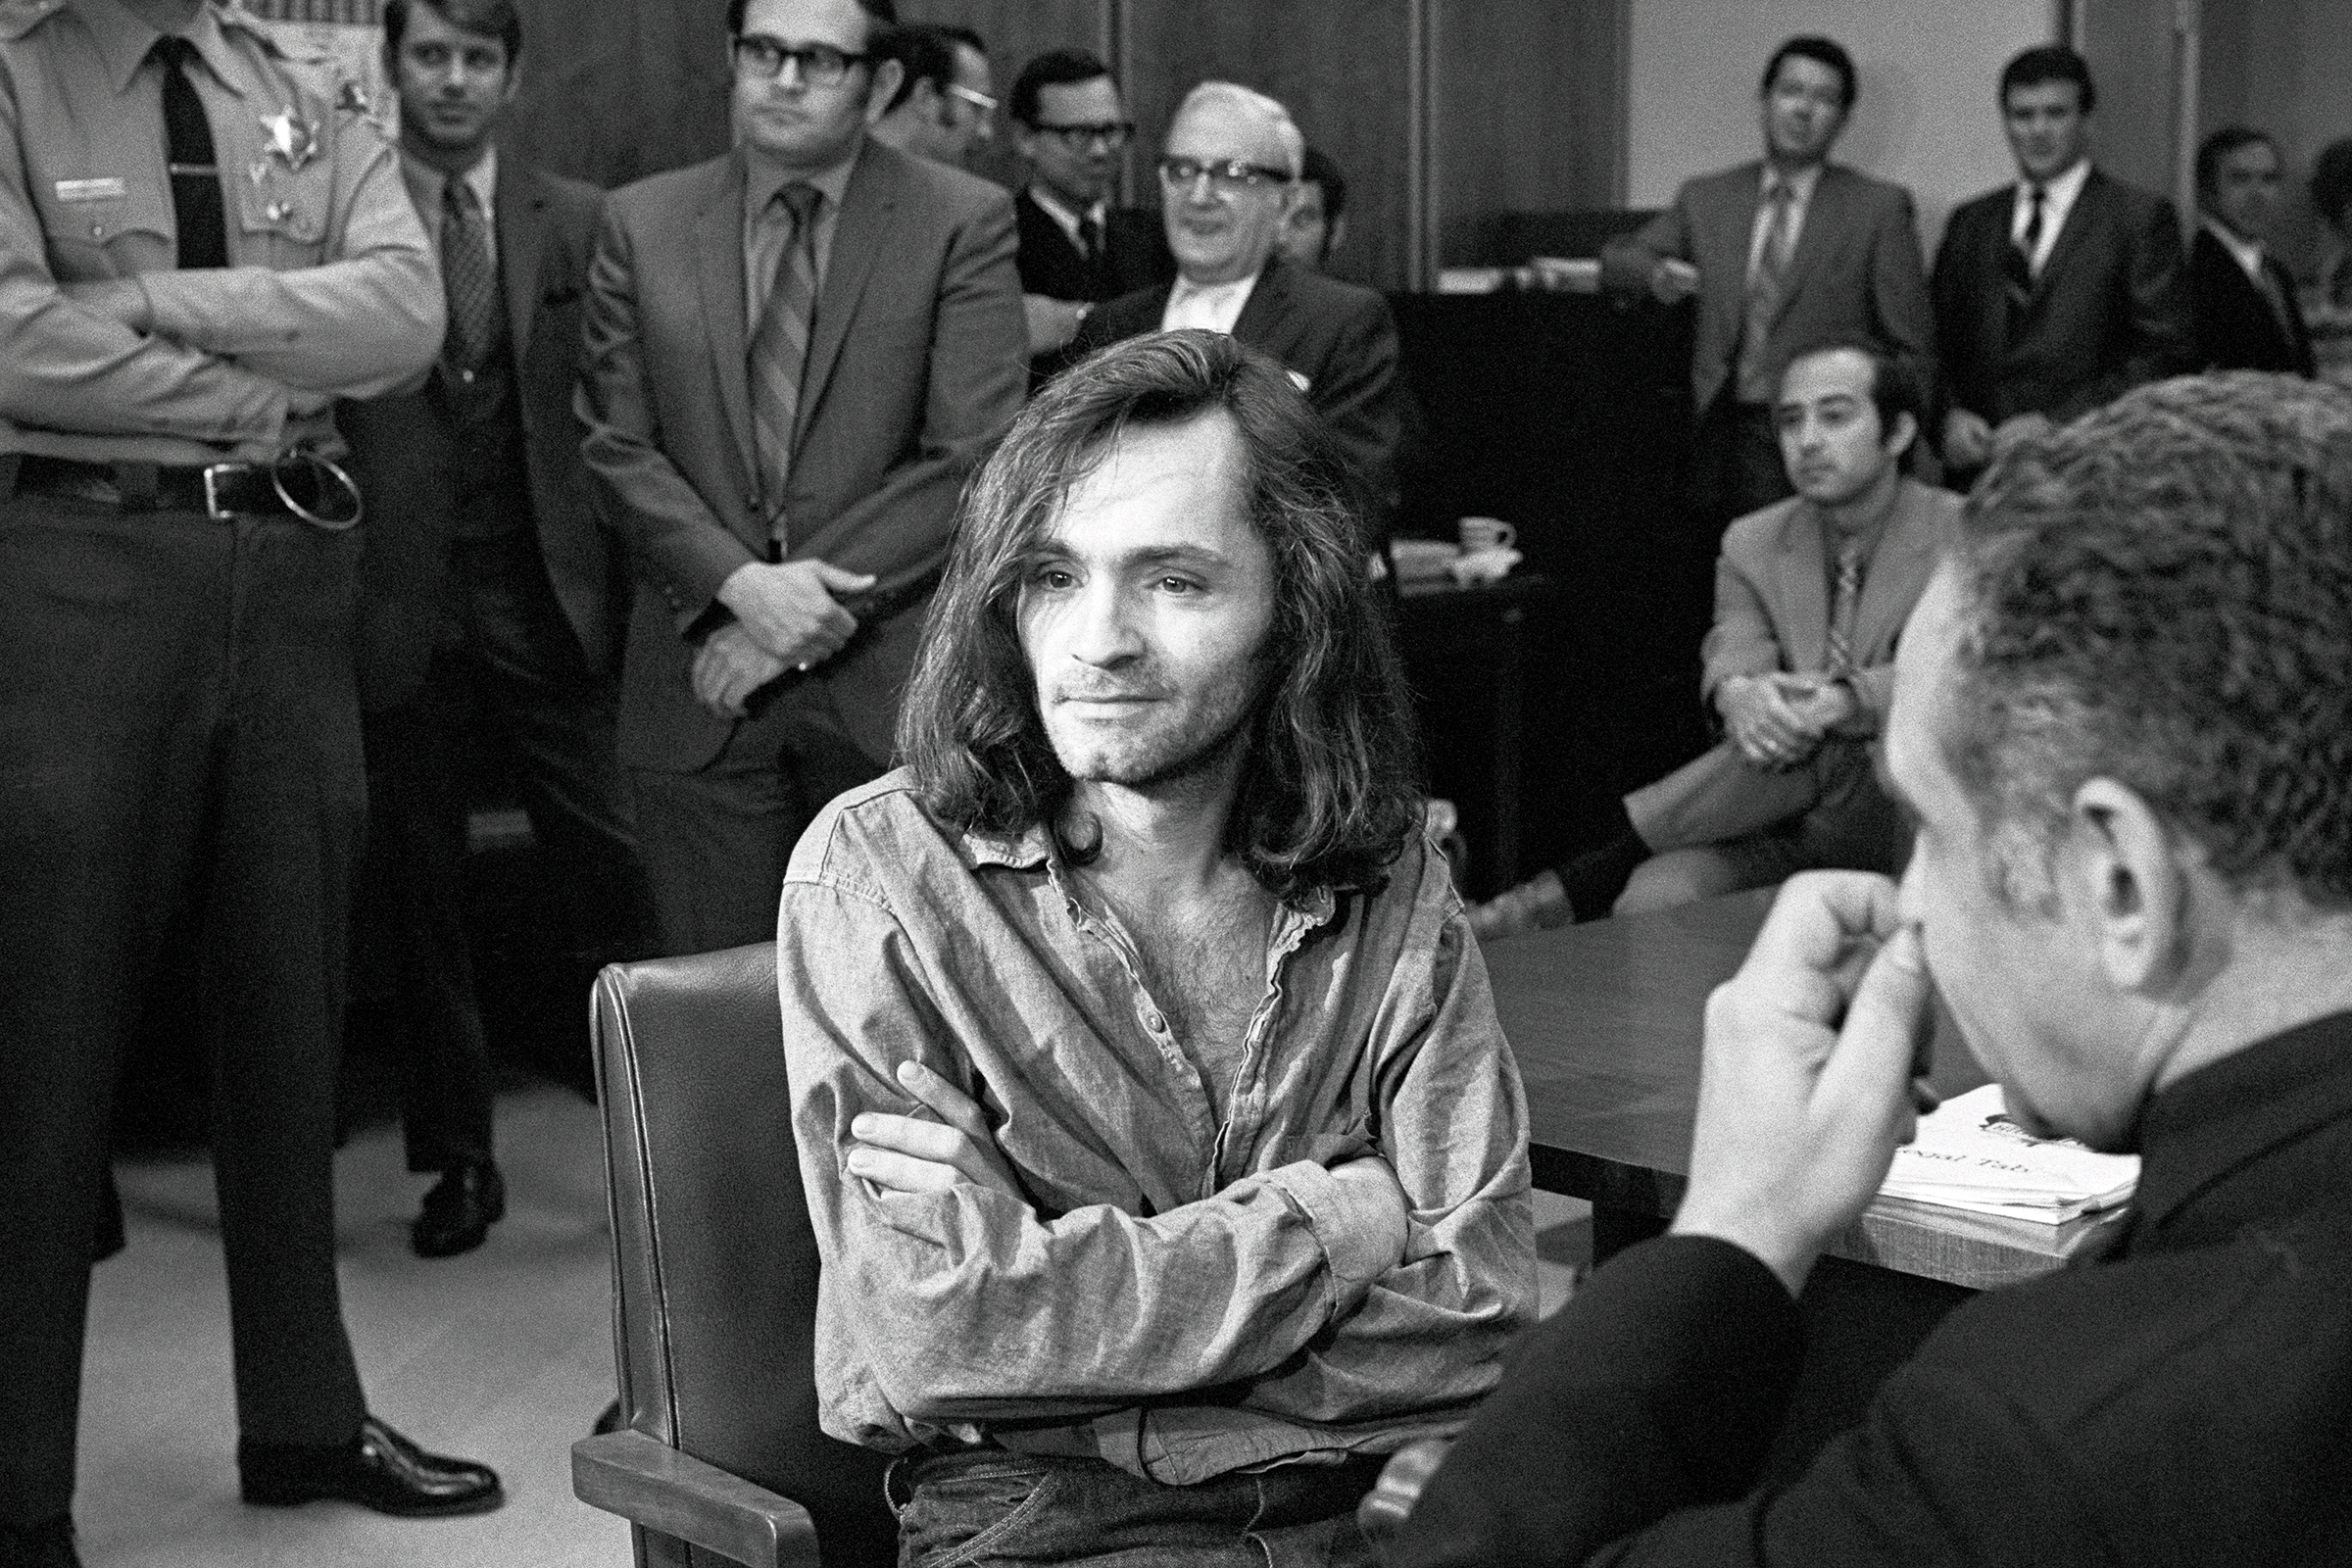 Manson Family Movies to Stream: Films That Go Inside 1969 Cult - Rolling Stone